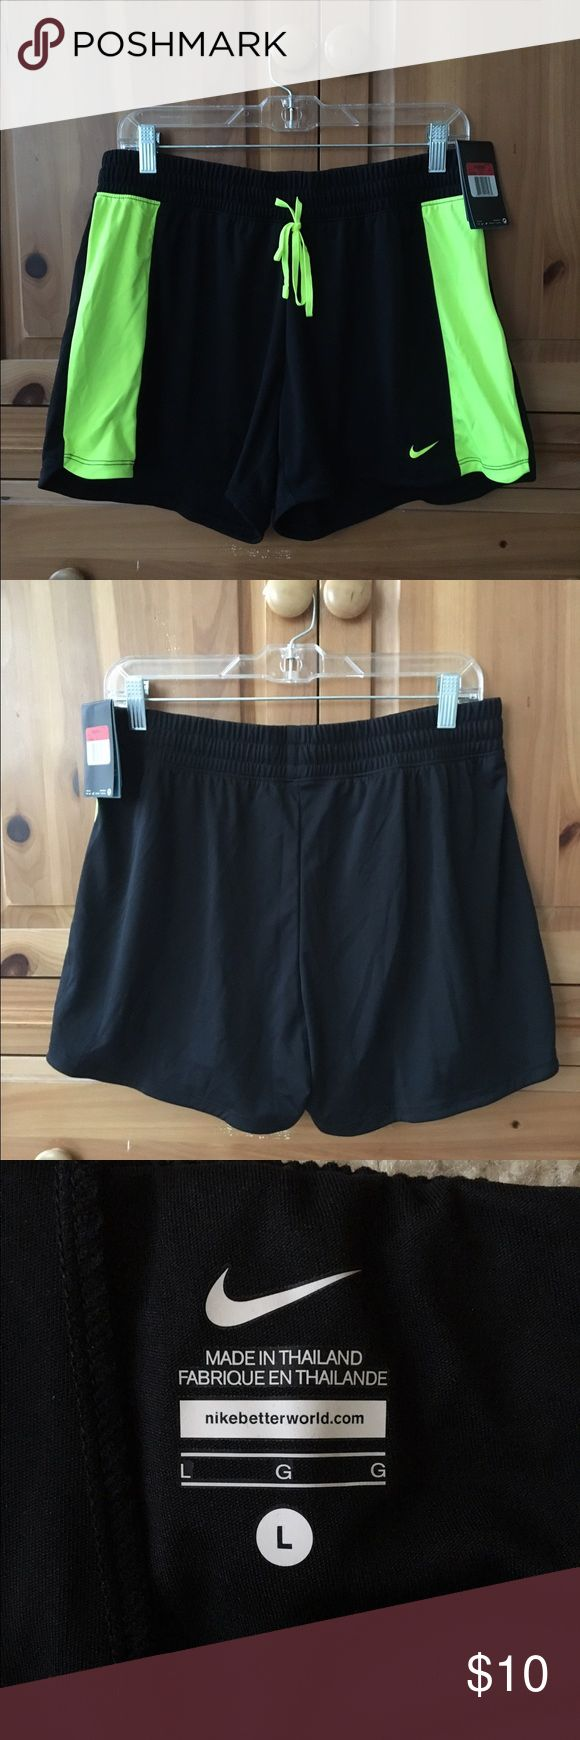 Nike Training Shorts Women's training shorts. Stay-cool Dry-Fit. Brand new with tag. Never been worn. Black will go with everything. Light weight. Nike Shorts Skorts